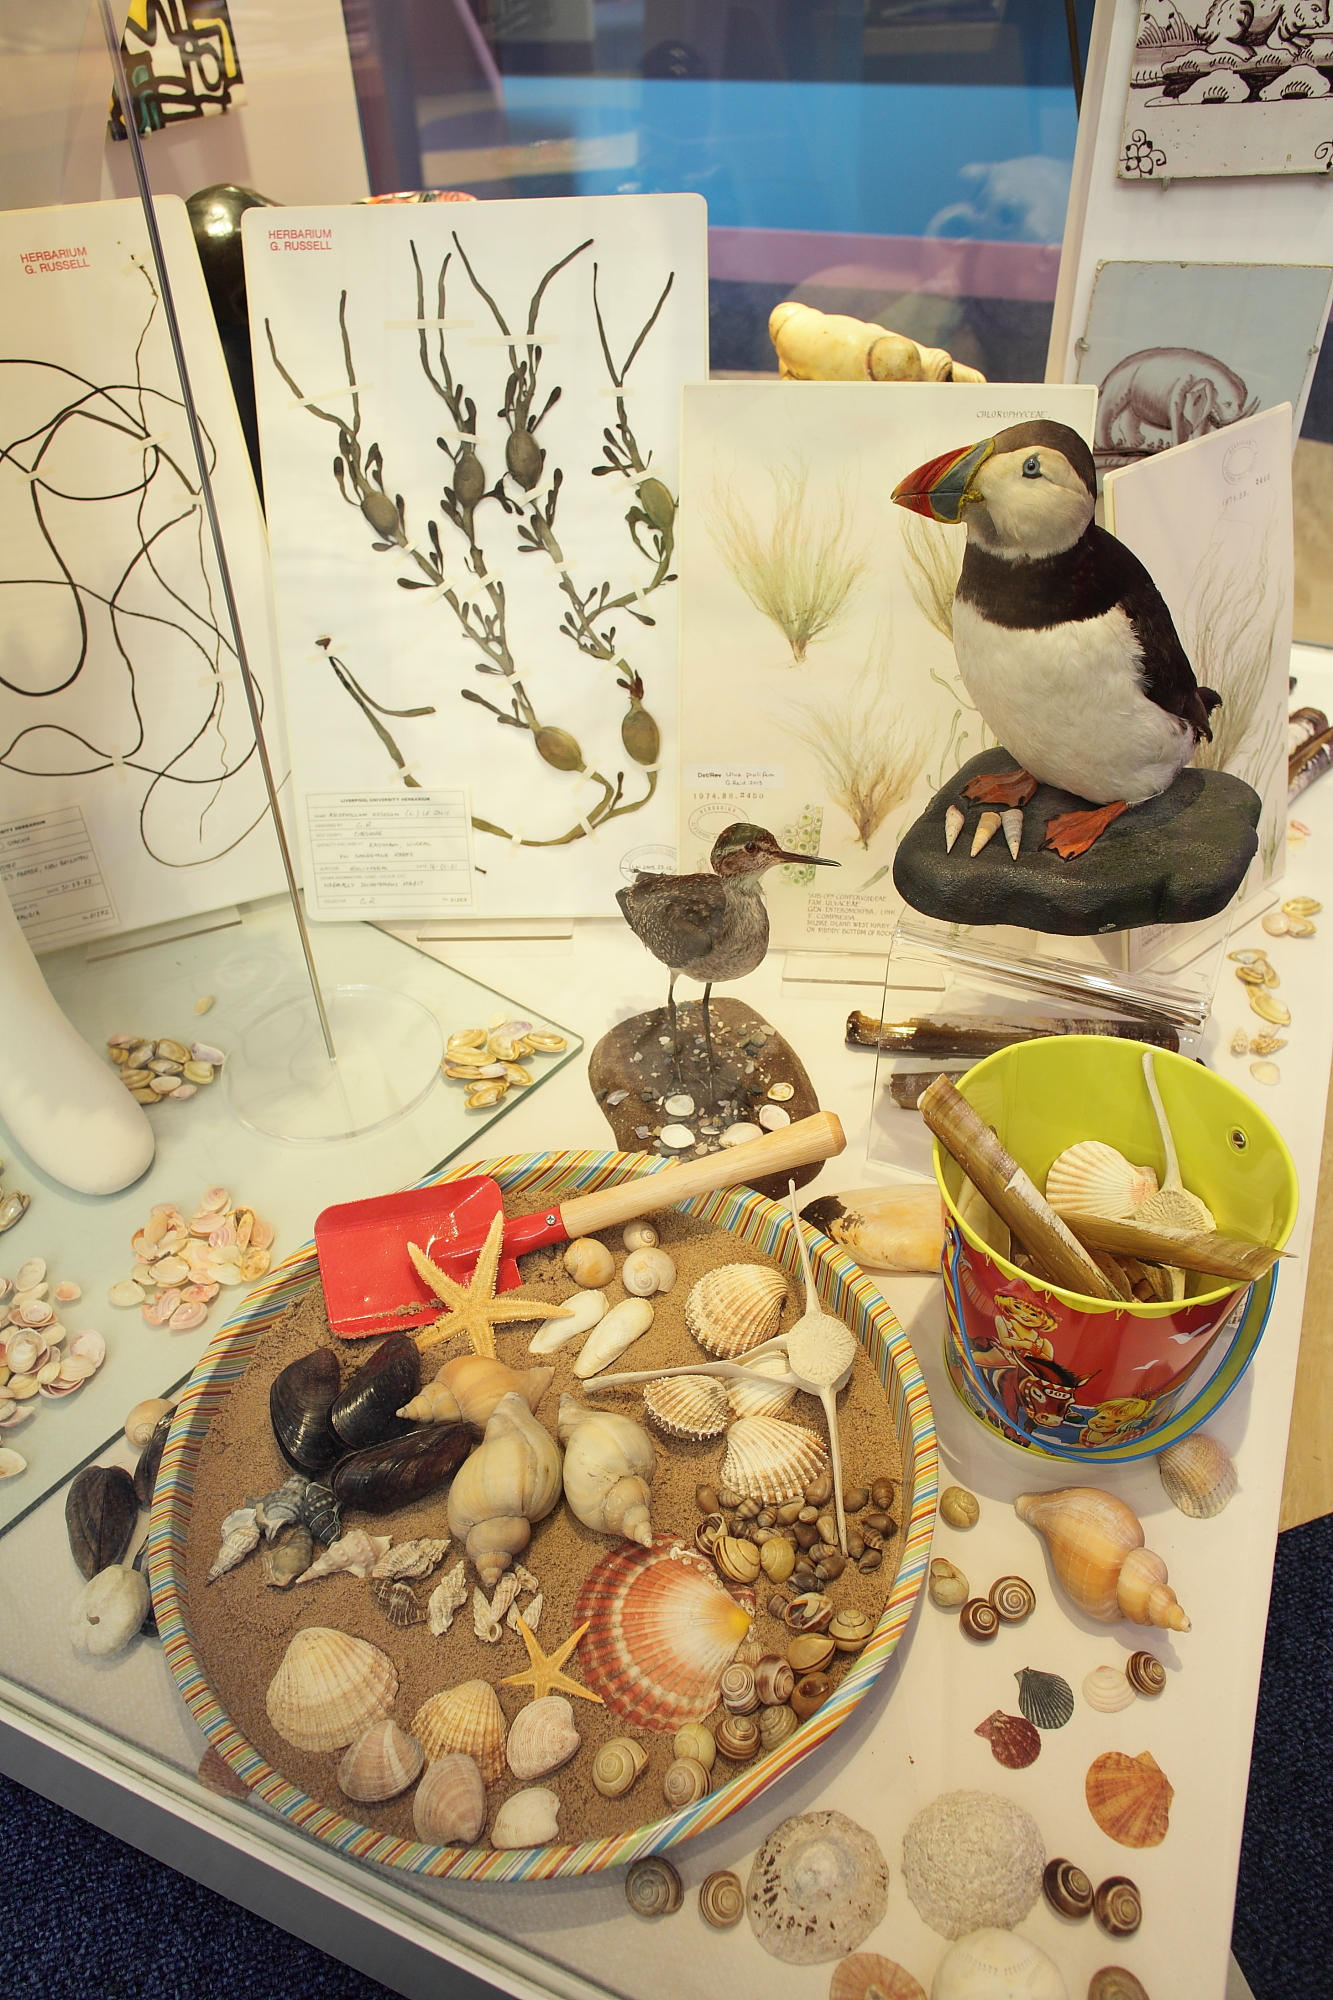 Beside the seaside with shells and a puffin